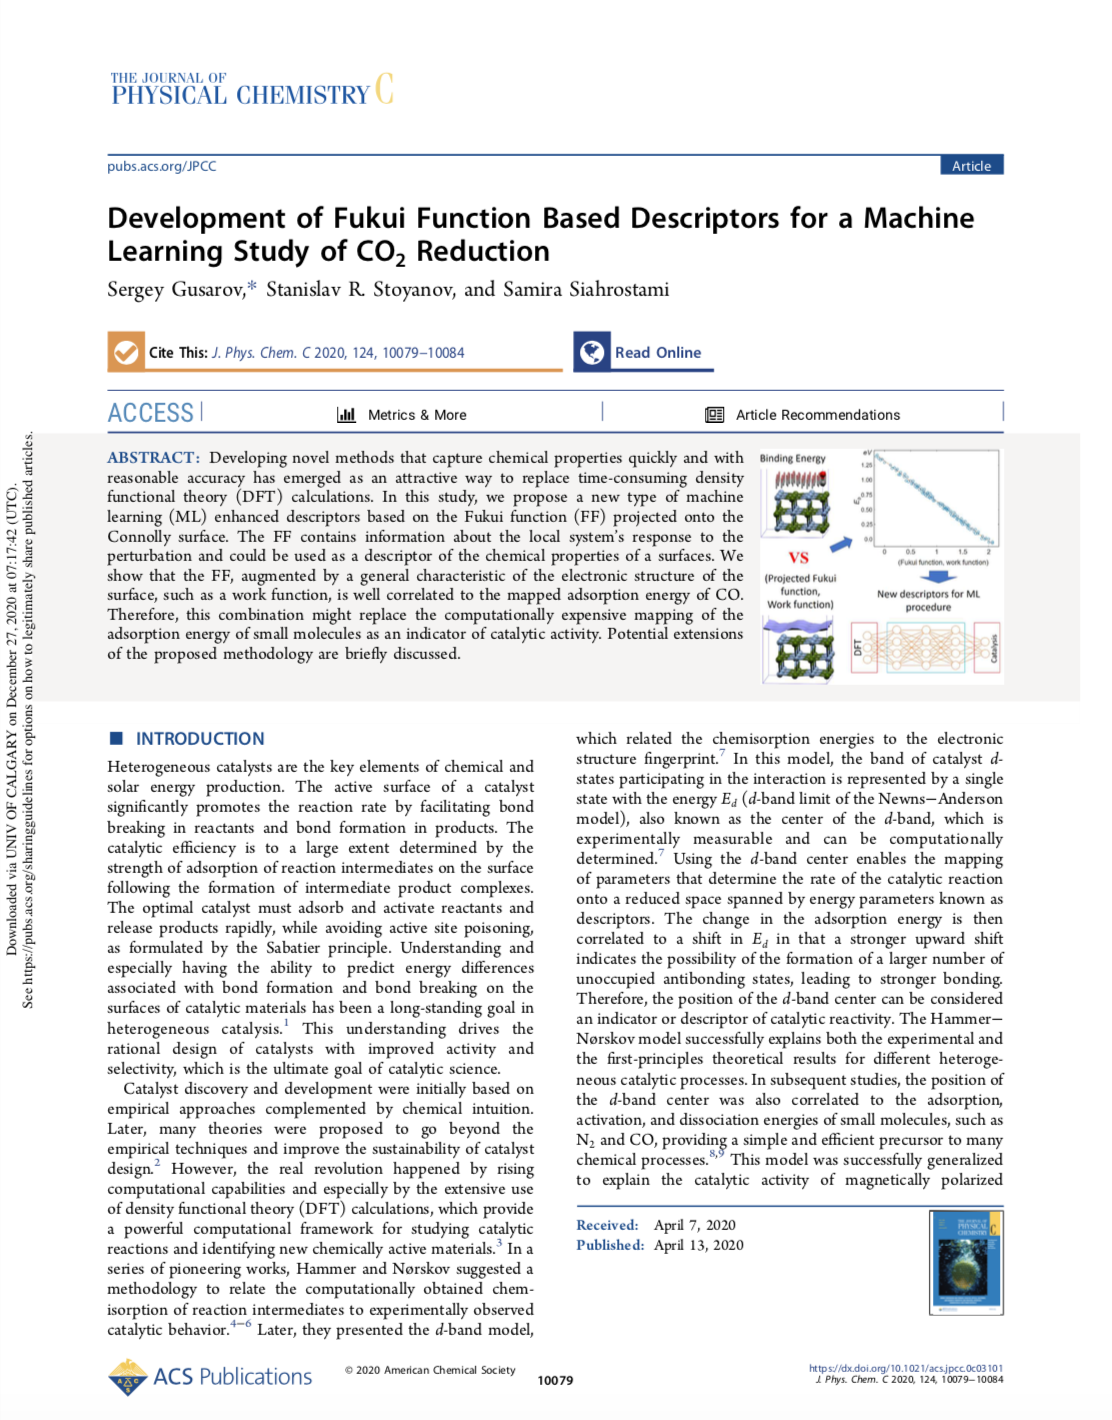 Development of Fukui Function Based Descriptors for a Machine Learning Study of CO2 Reduction